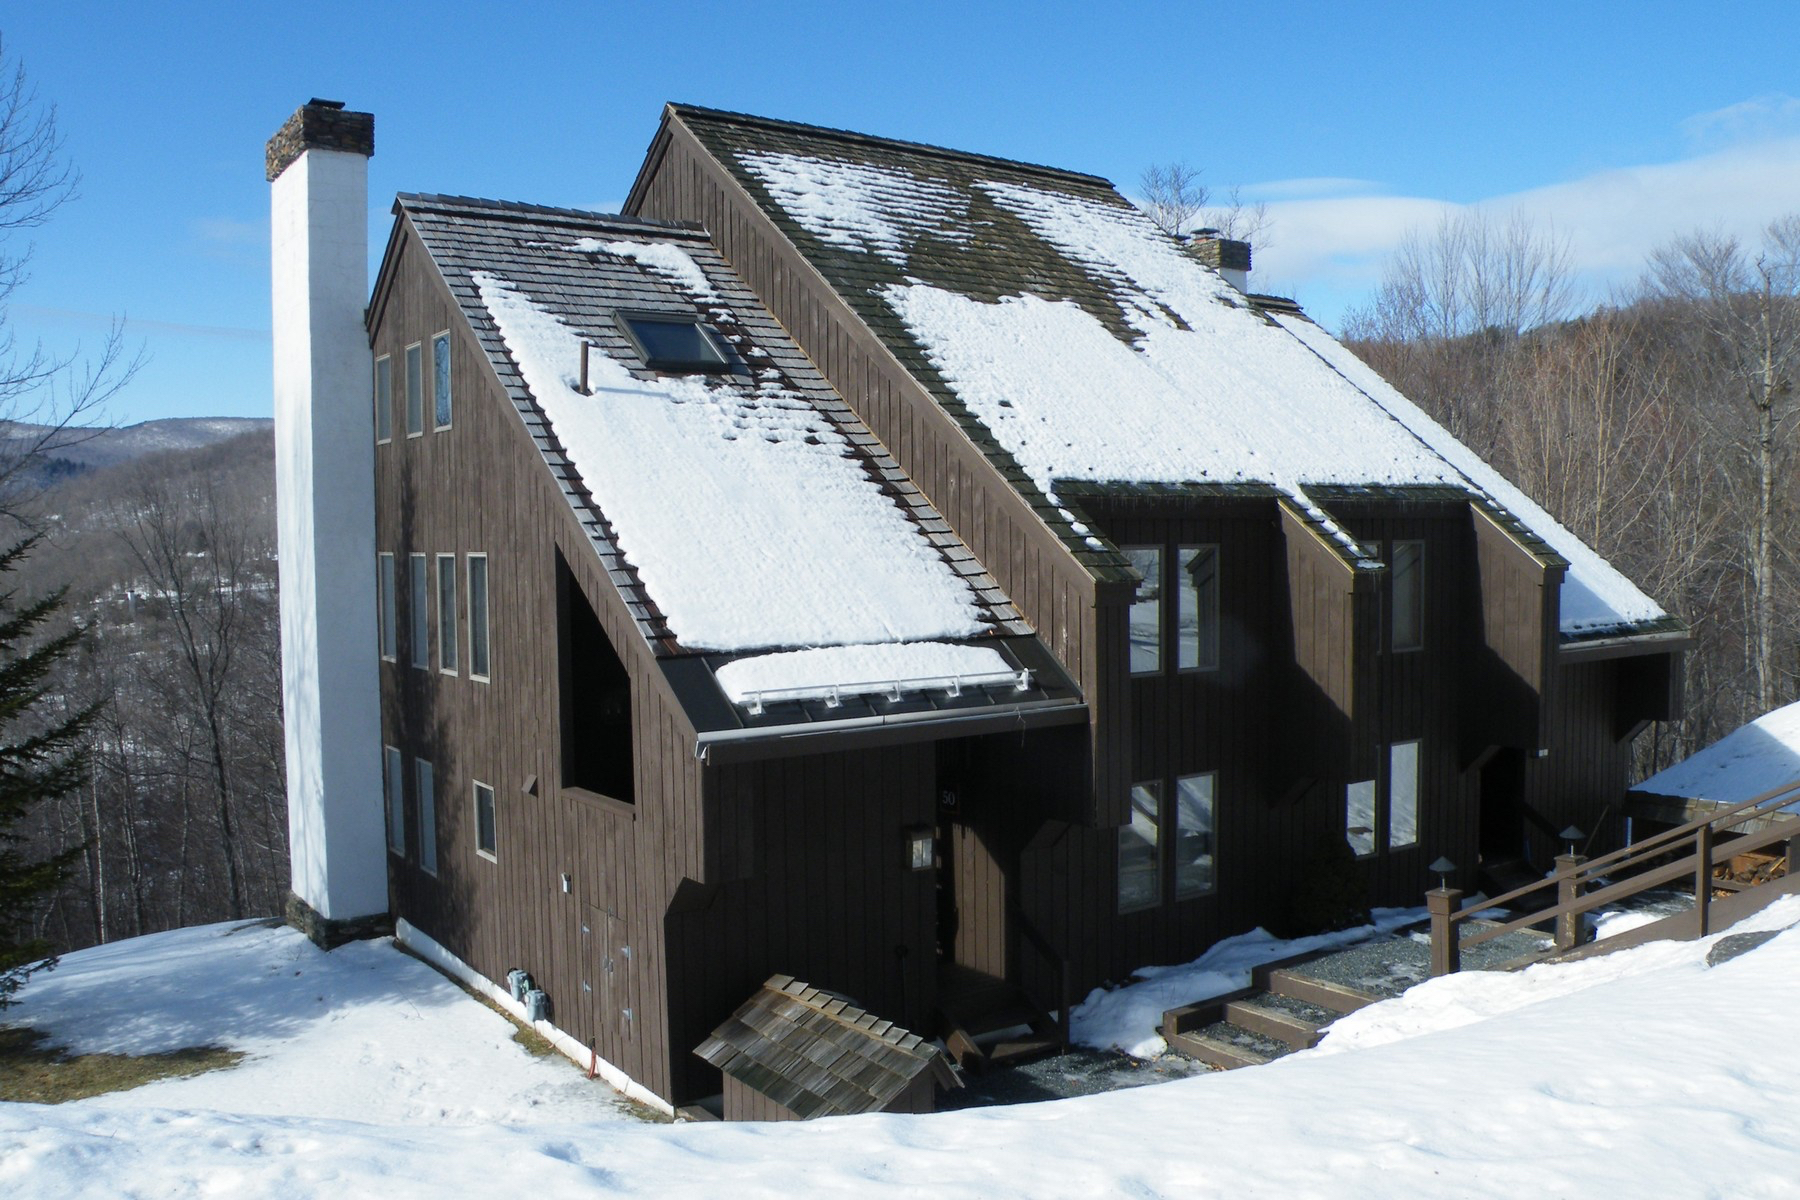 شقة بعمارة للـ Sale في Bi-Level - Three Bedroom Condominium 145 Blueberry Ledge Ridge 49, Plymouth, Vermont, 05056 United States